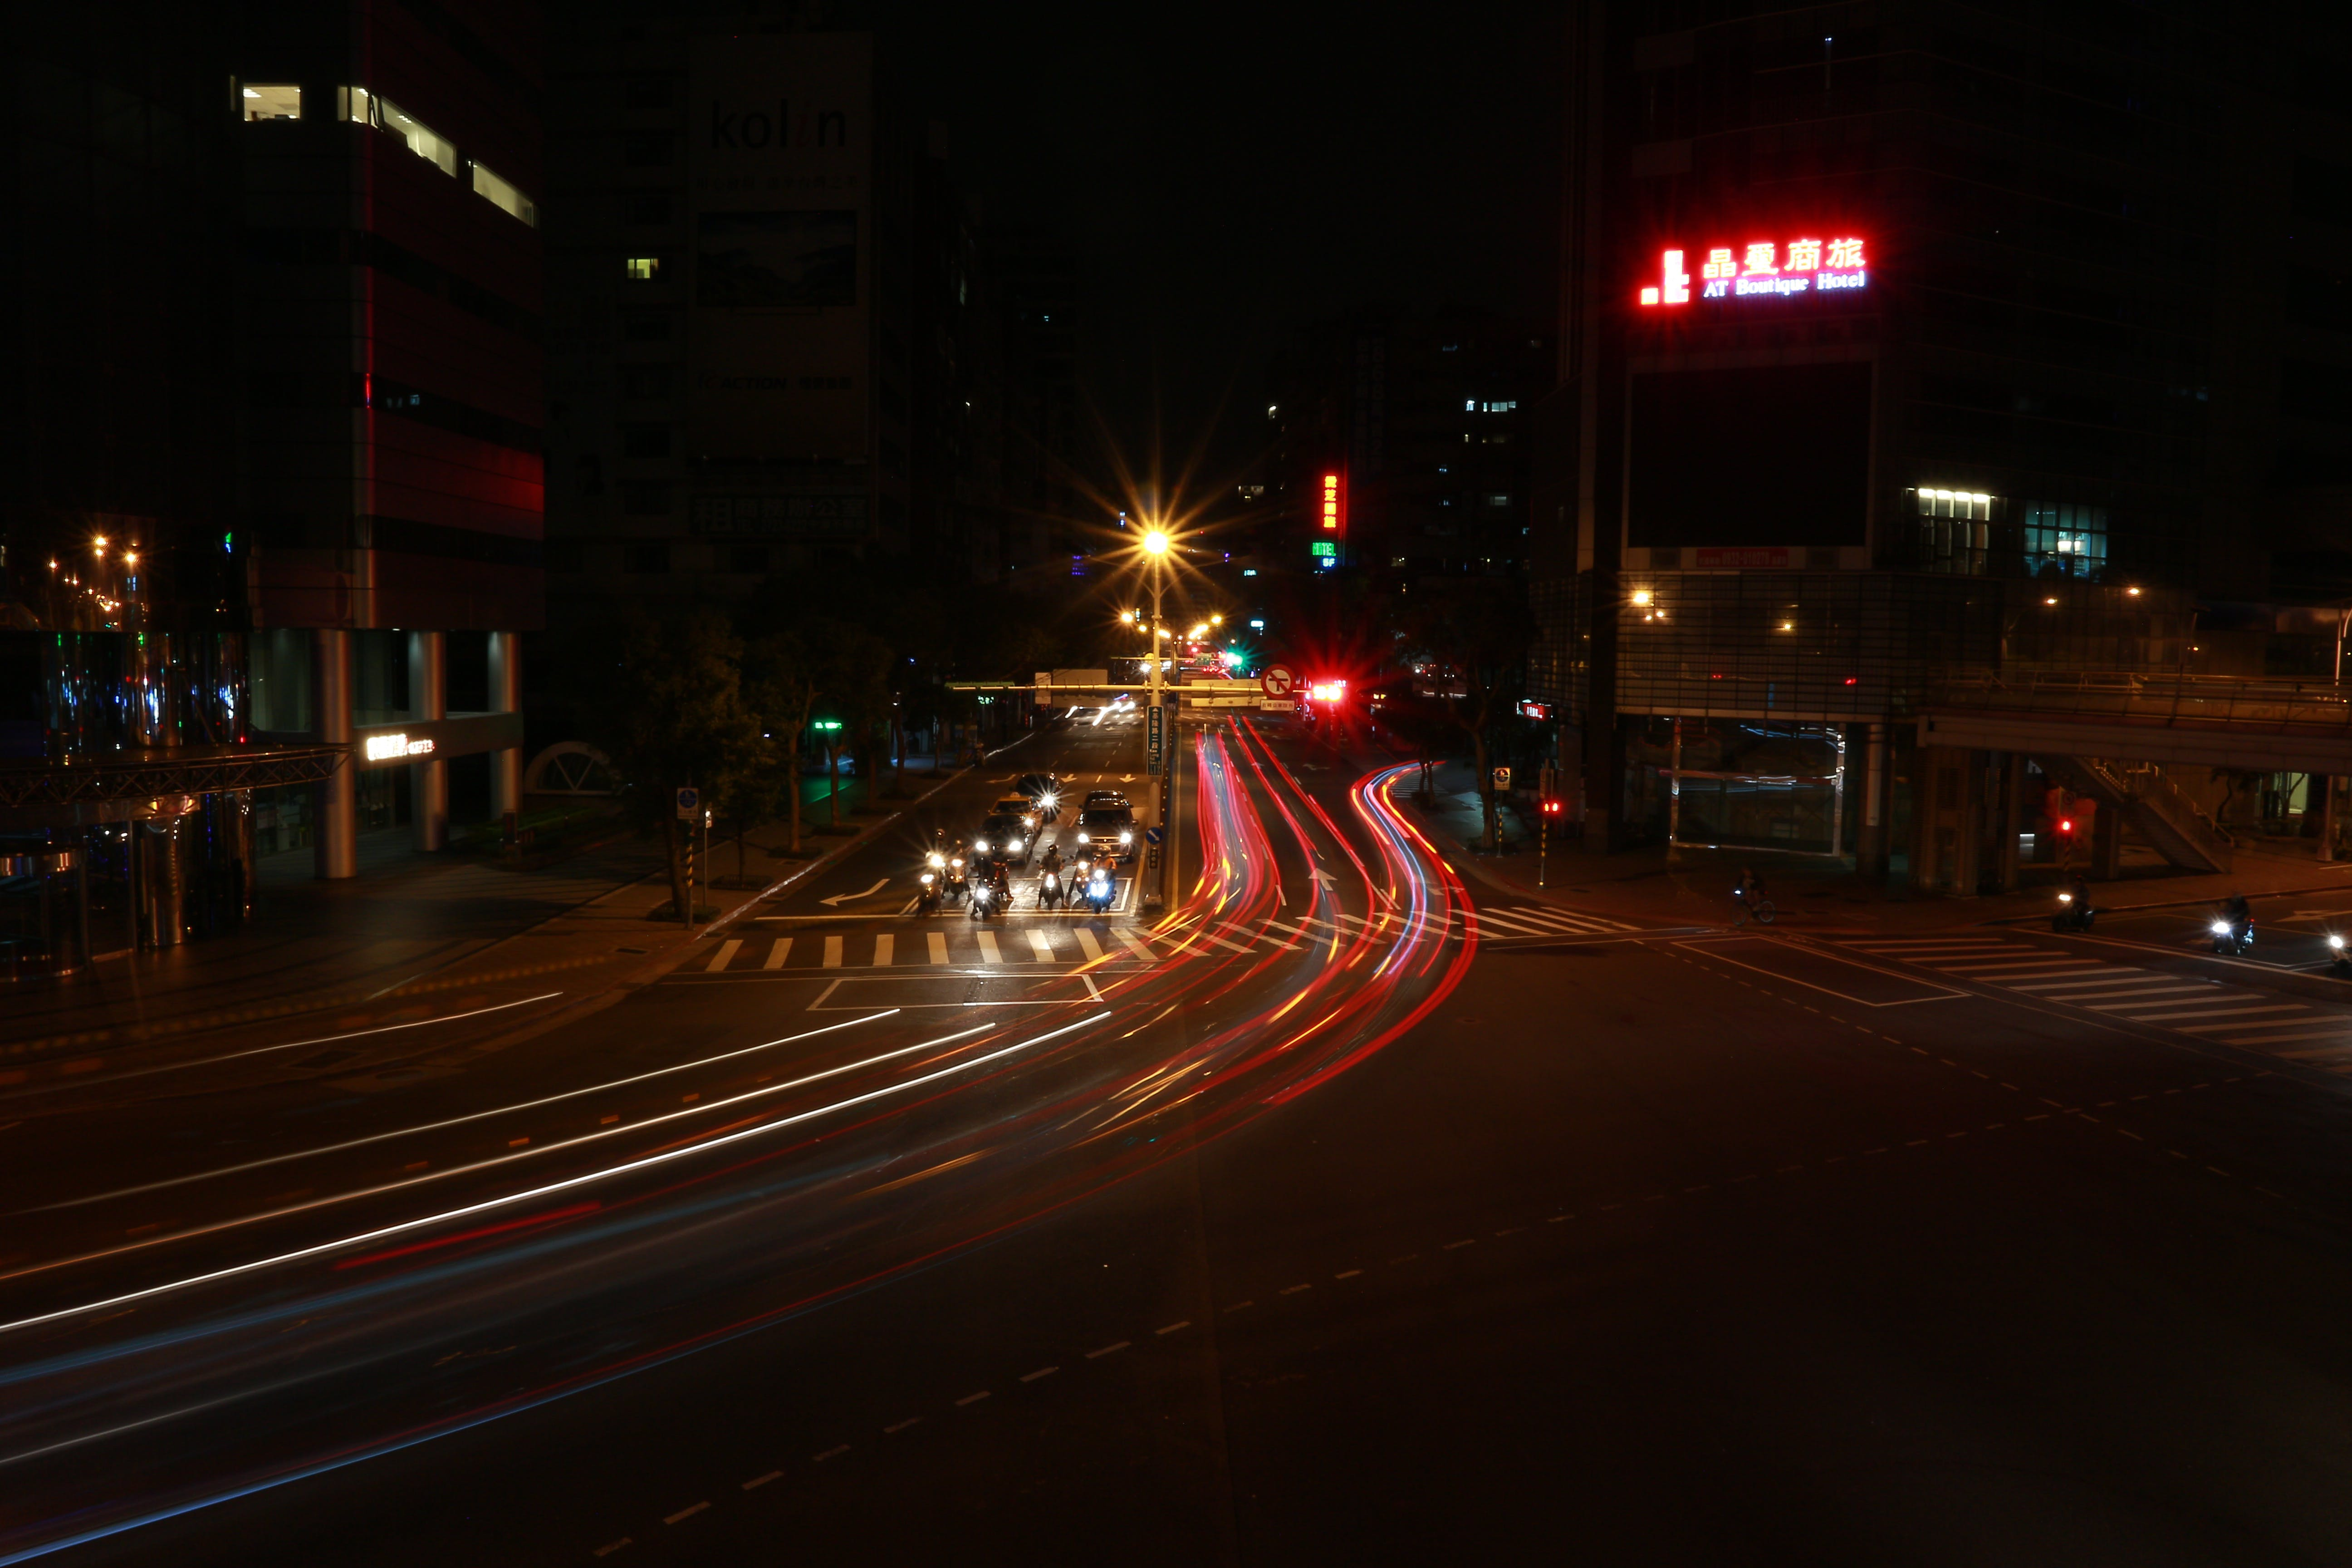 Time-lapse Photography of Road and Building